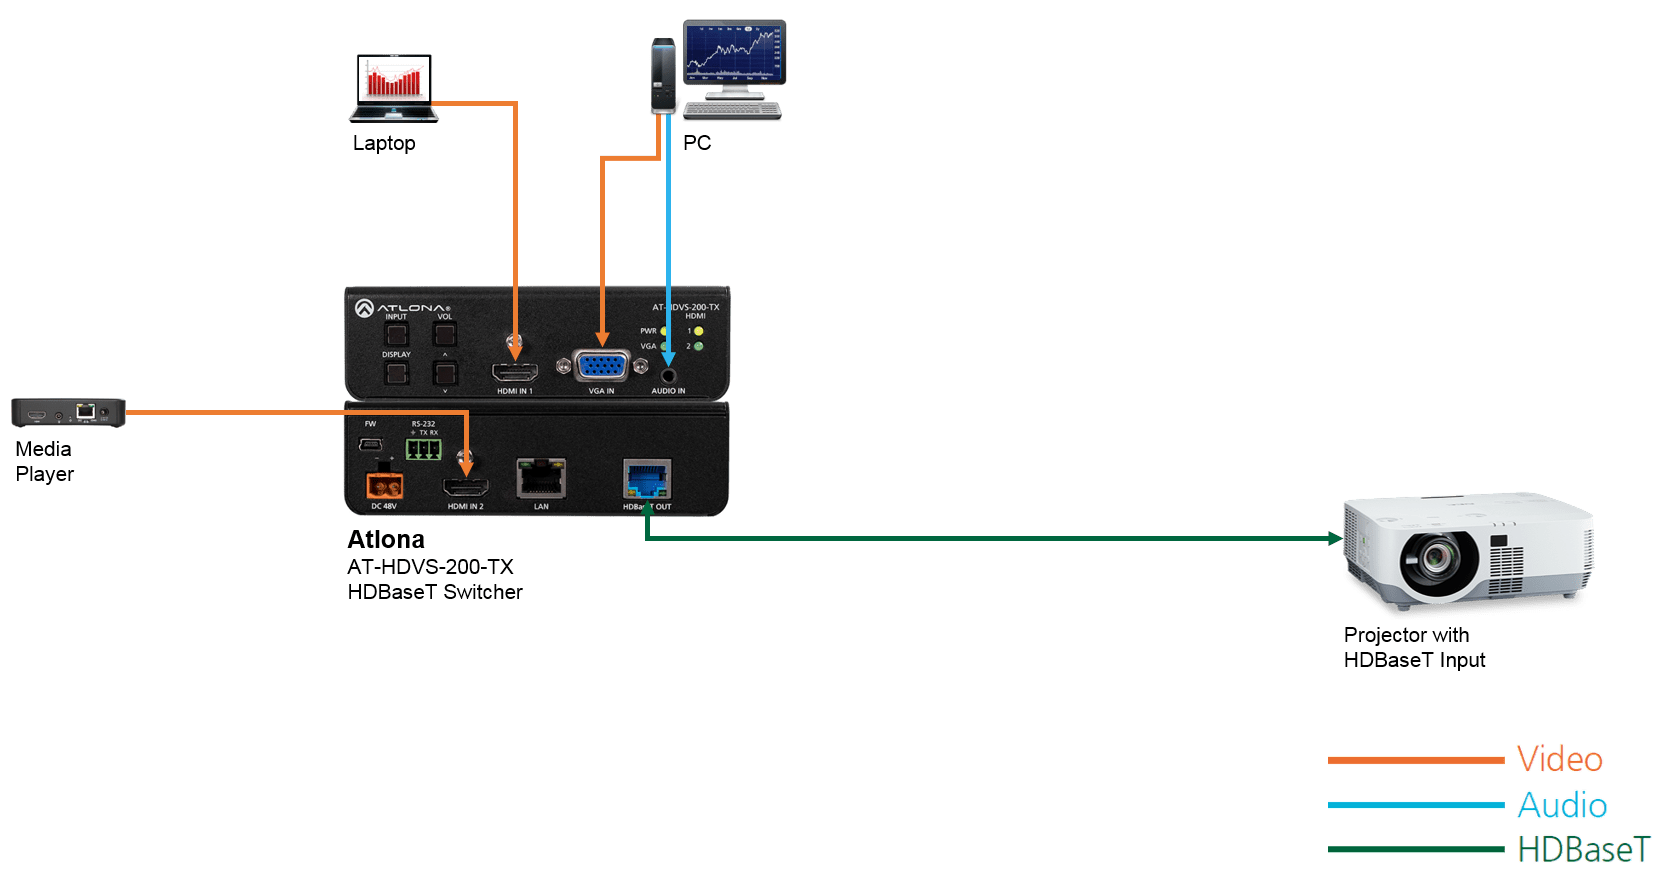 Hdvs 200 Tx Psk Three Input Switcher For Hdmi And Vga Sources